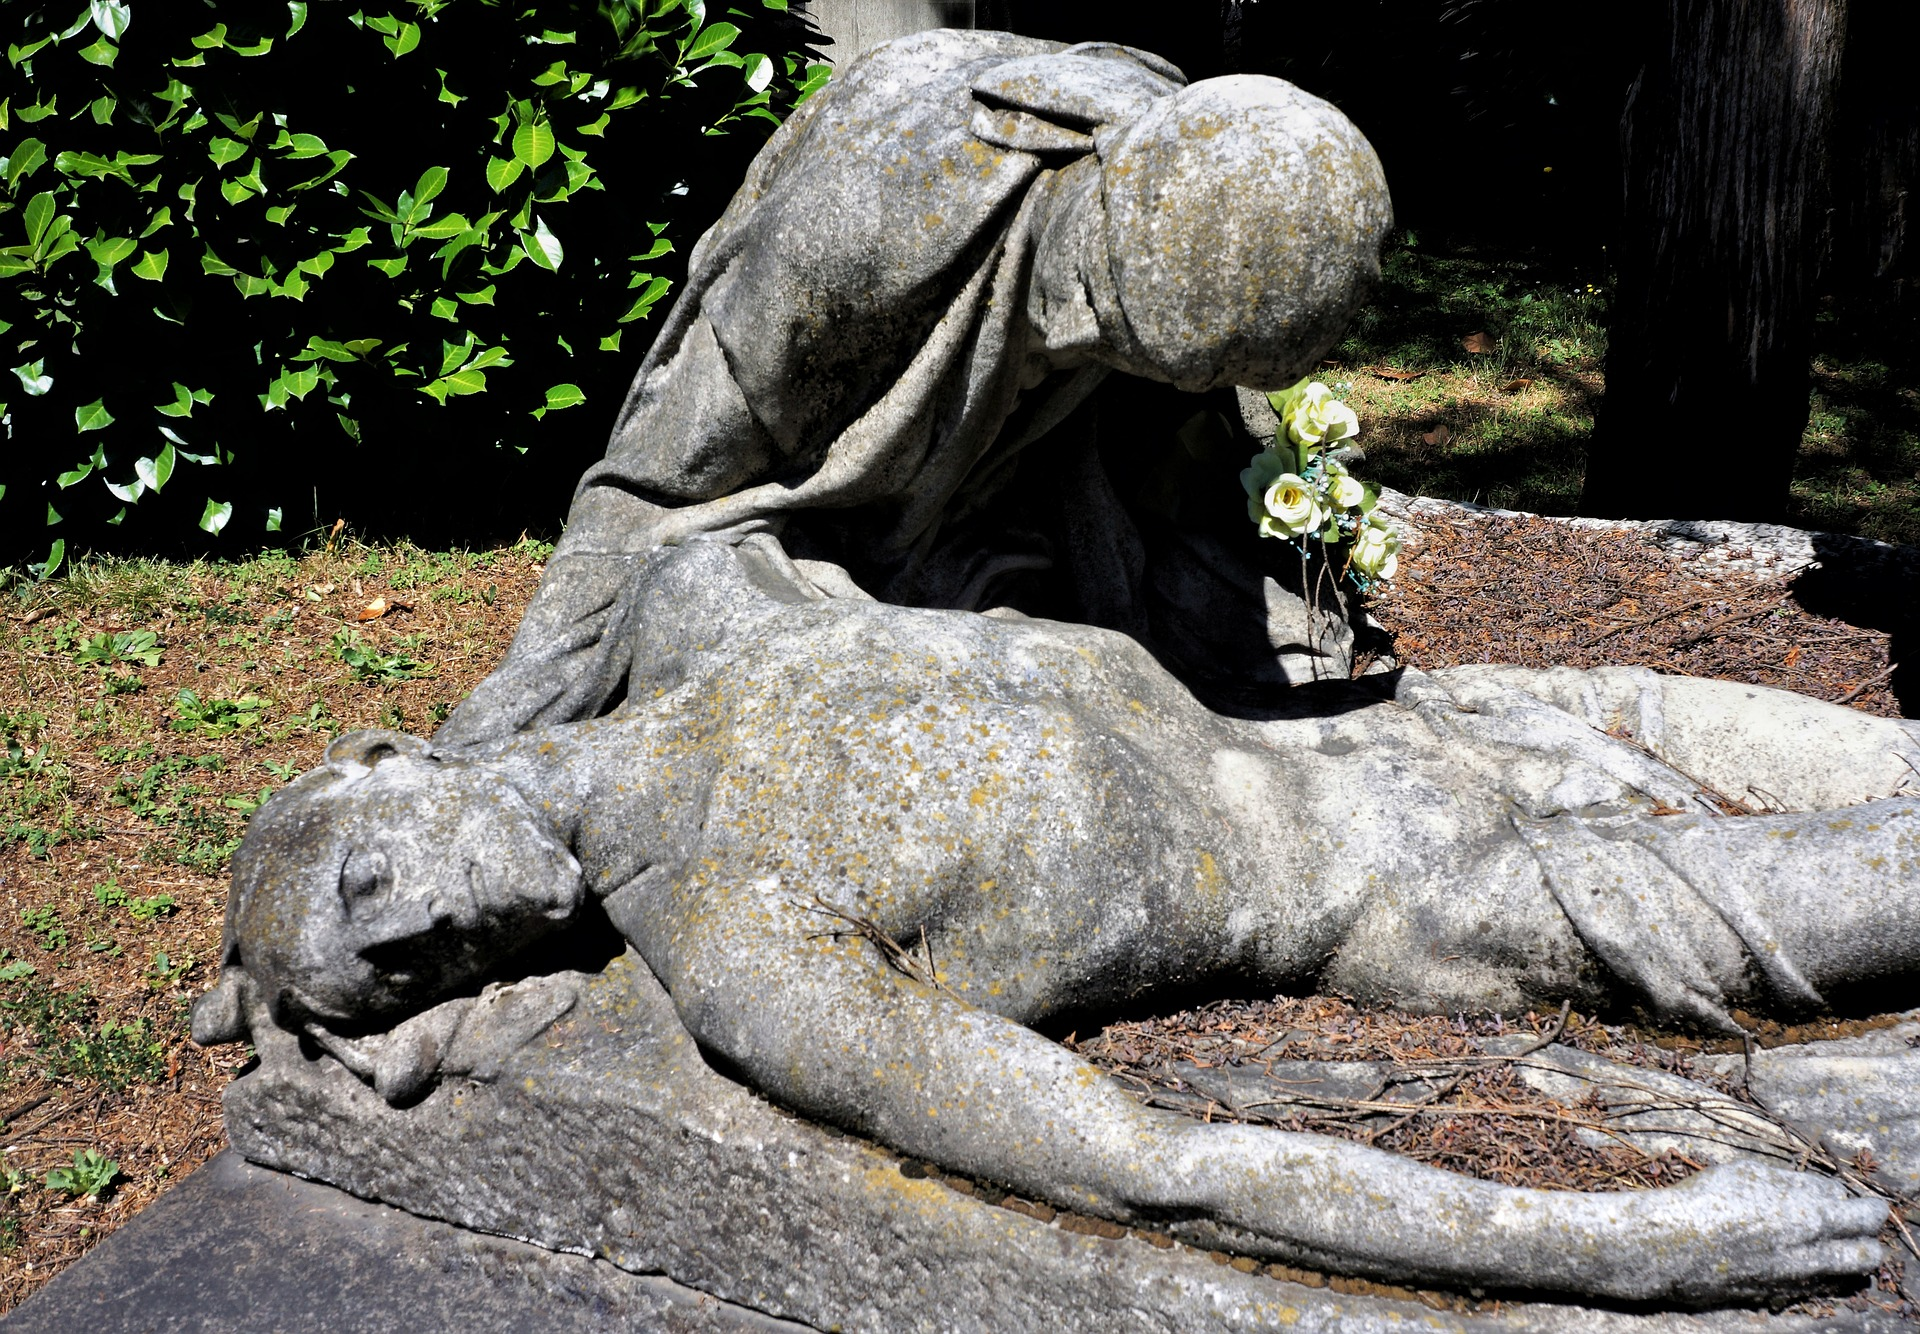 Dying sculture